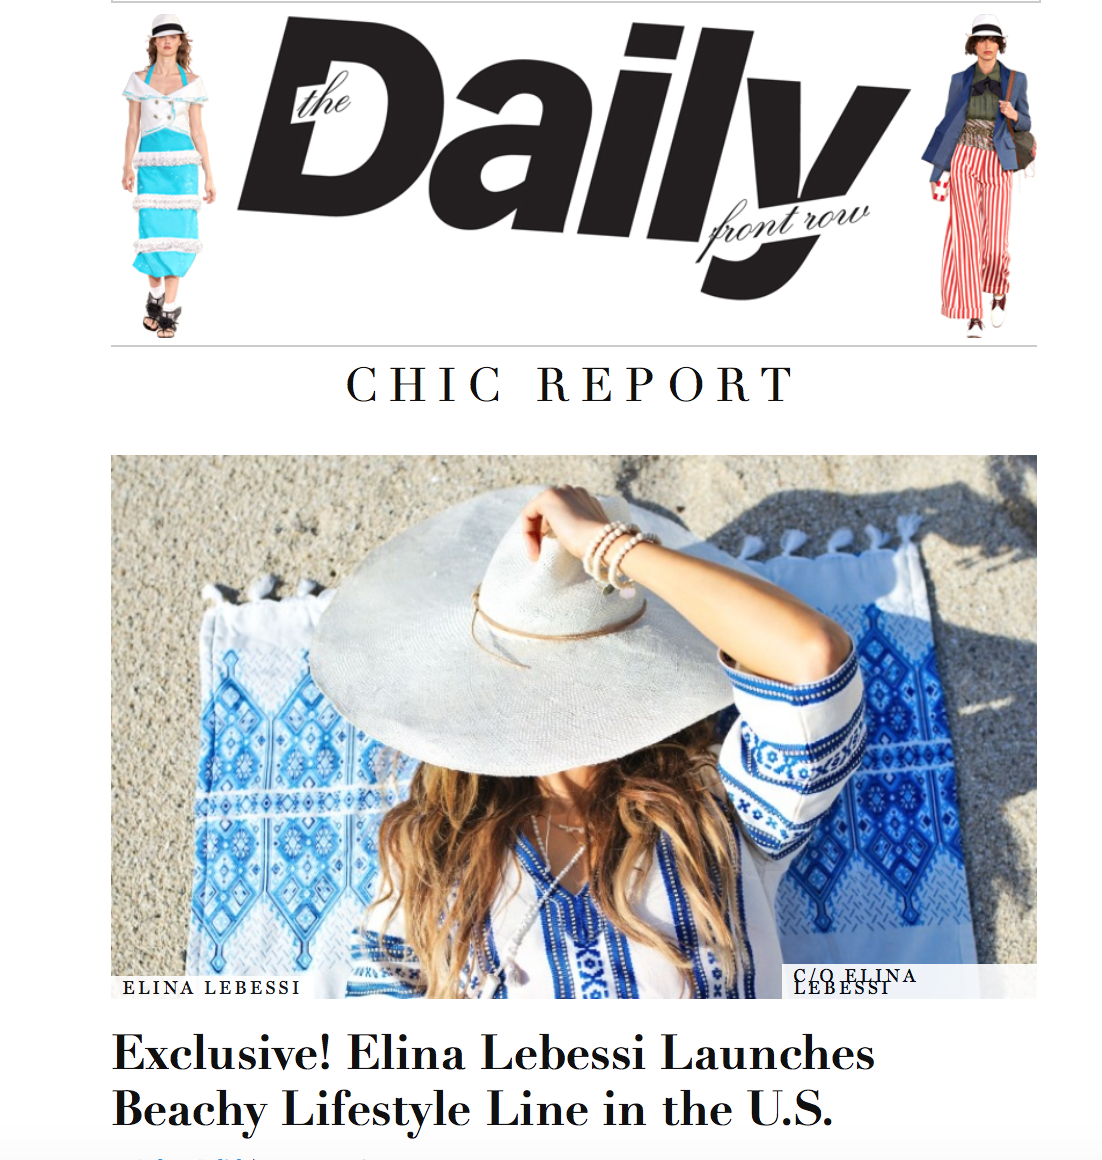 http://fashionweekdaily.com/exclusive-elina-lebessi-launches-beachy-lifestyle-line-in-u-s/